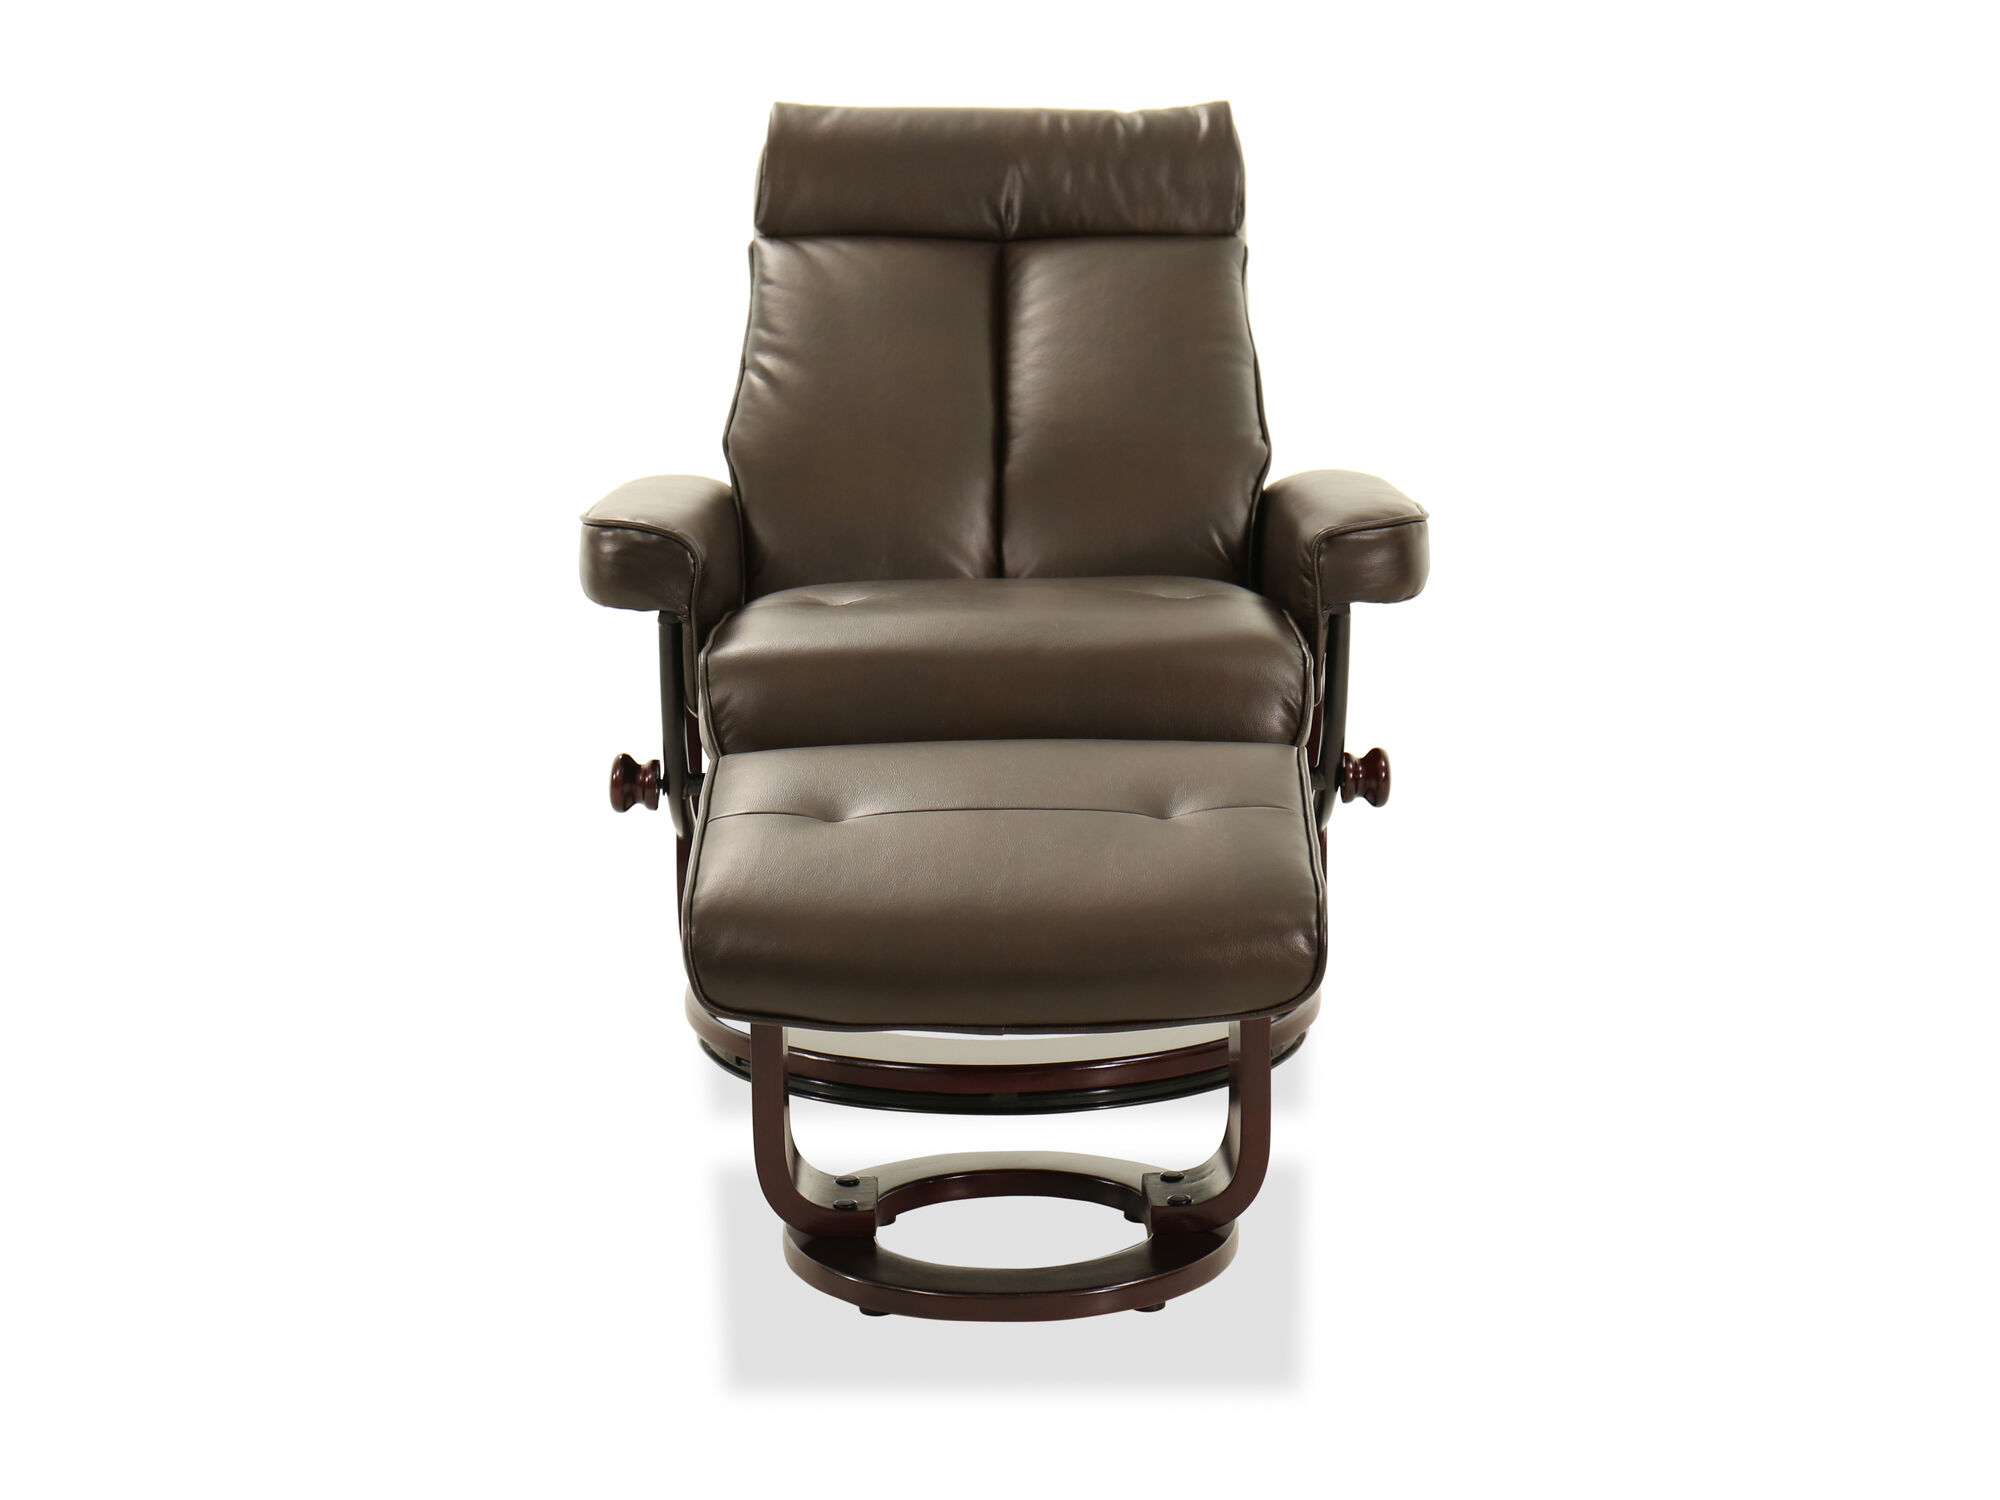 leather recliner chair and ottoman in